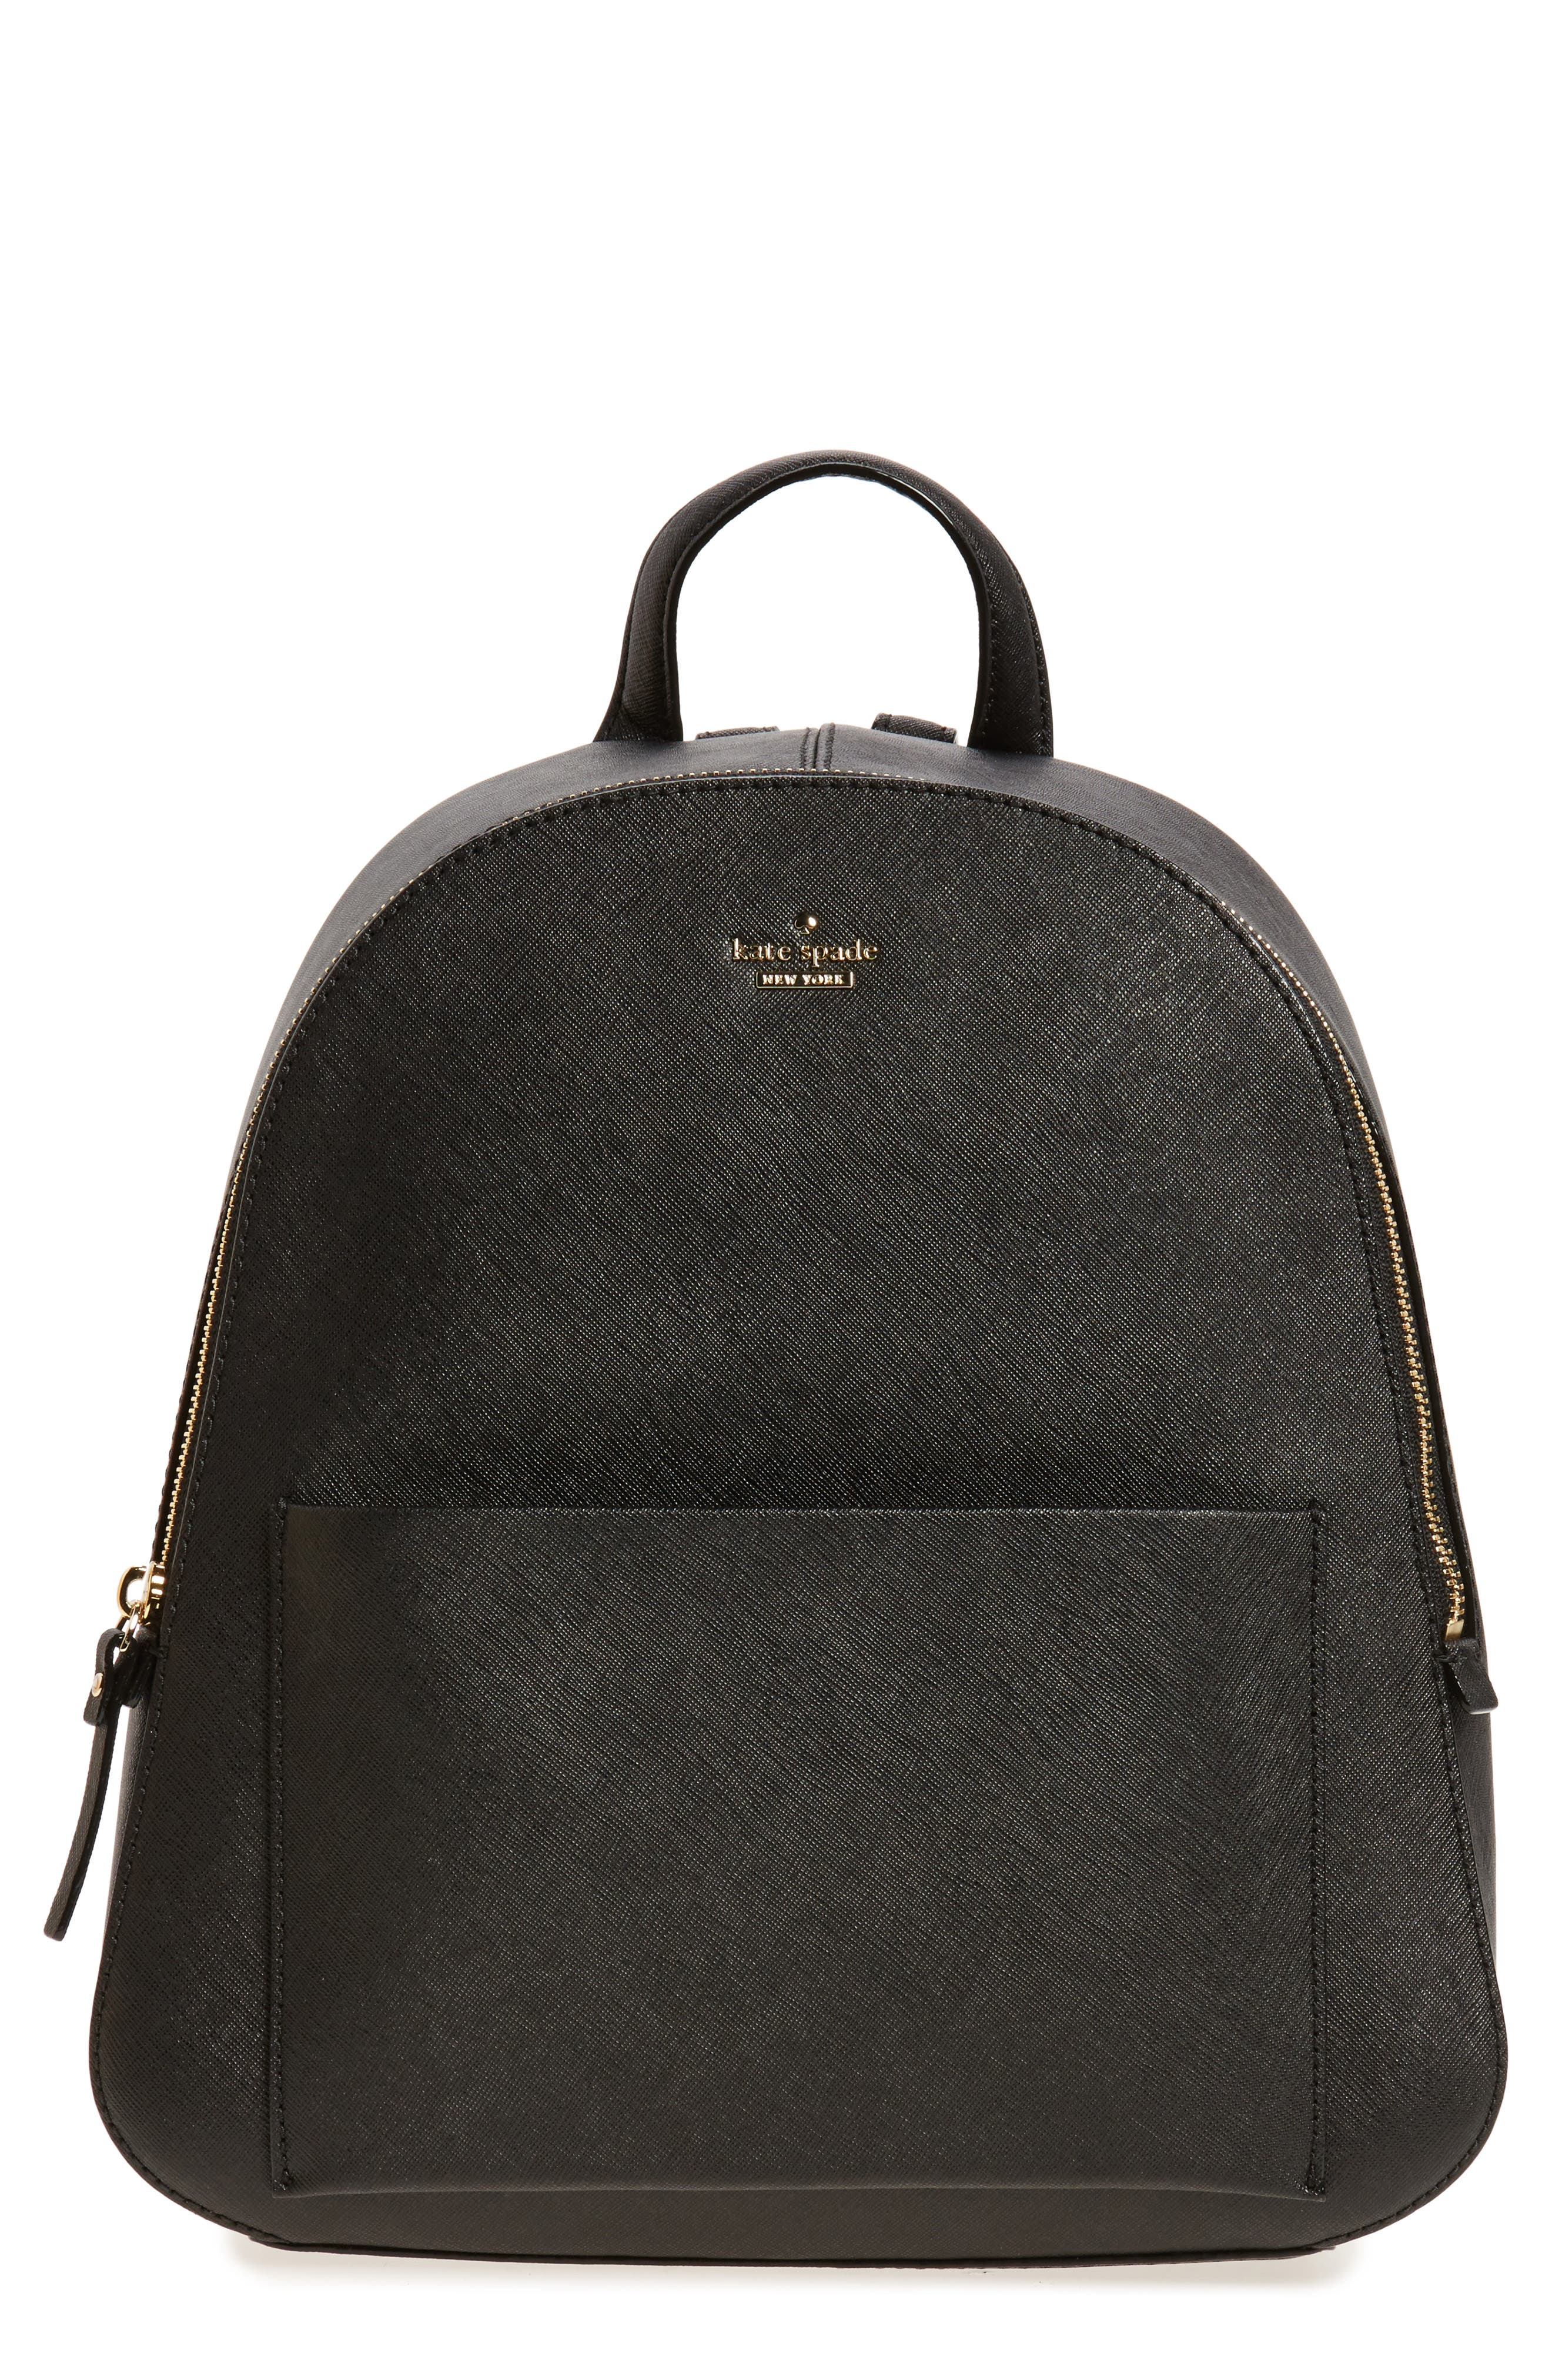 KATE SPADE NEW YORK cameron street marisole leather backpack